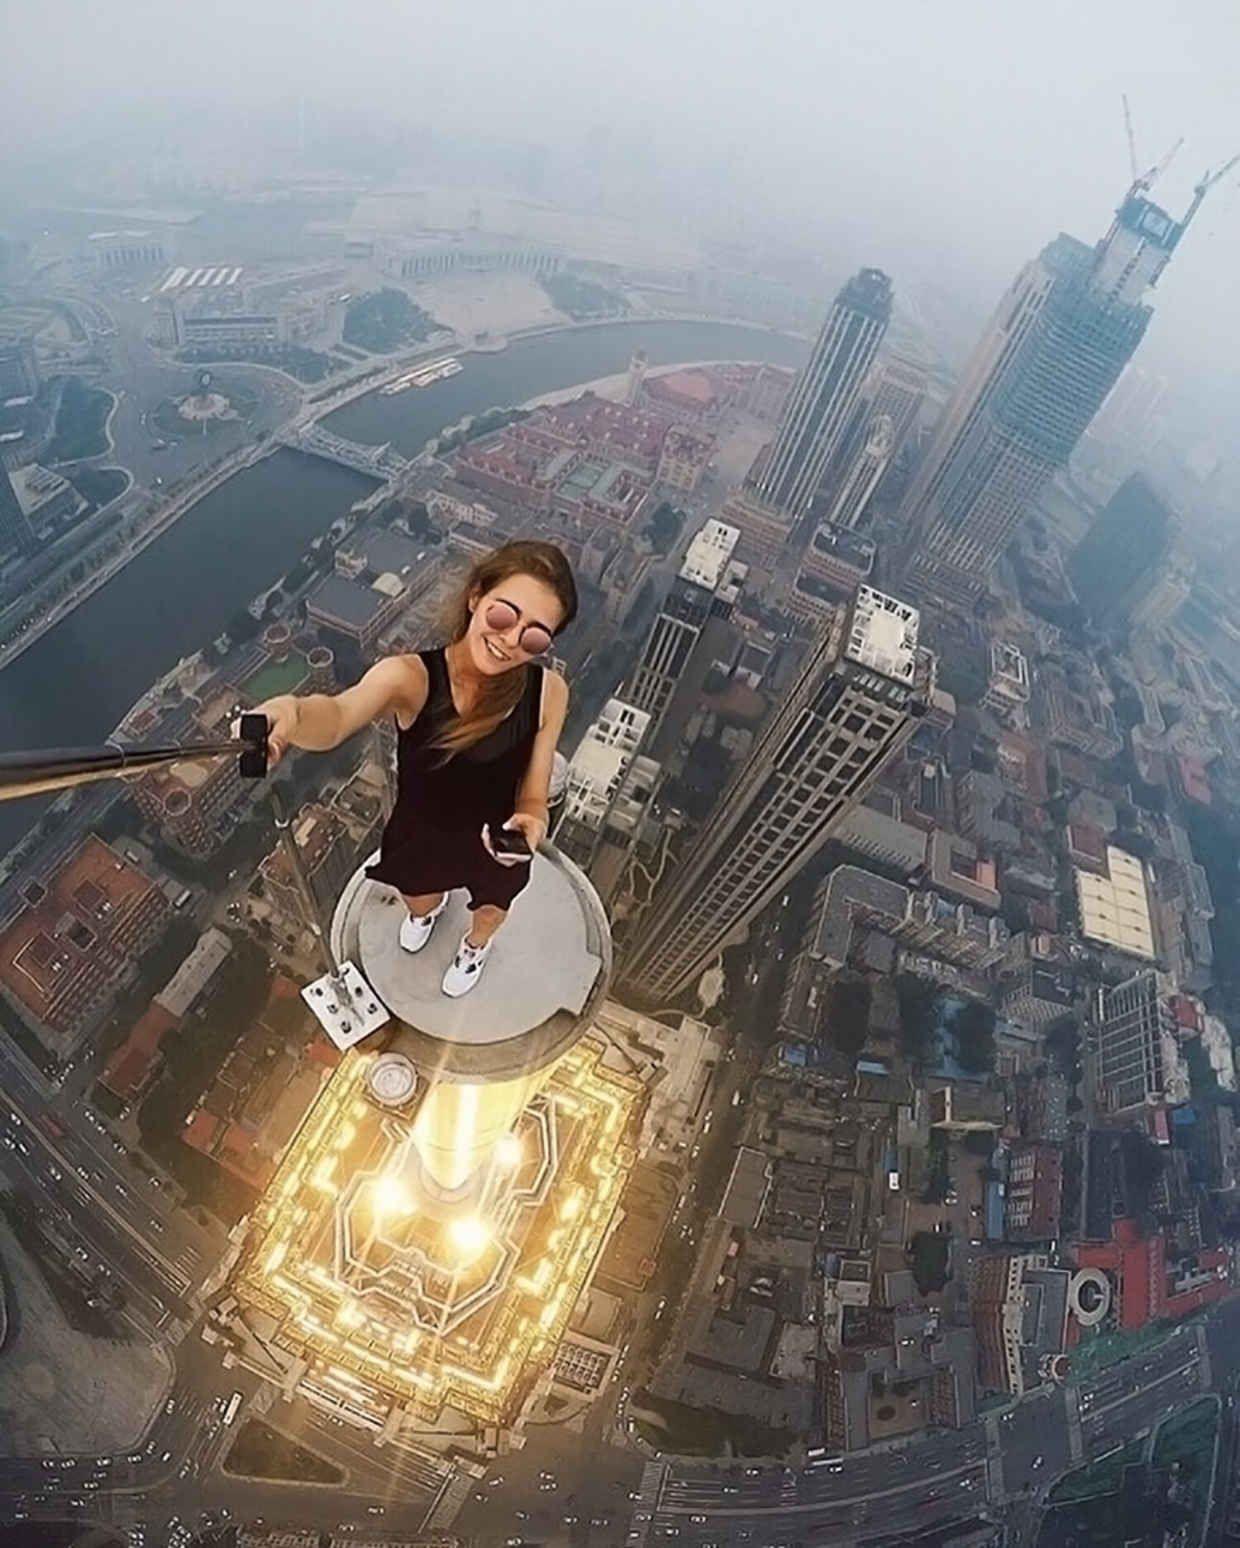 Charming Muscovite makes the most dangerous Selfies